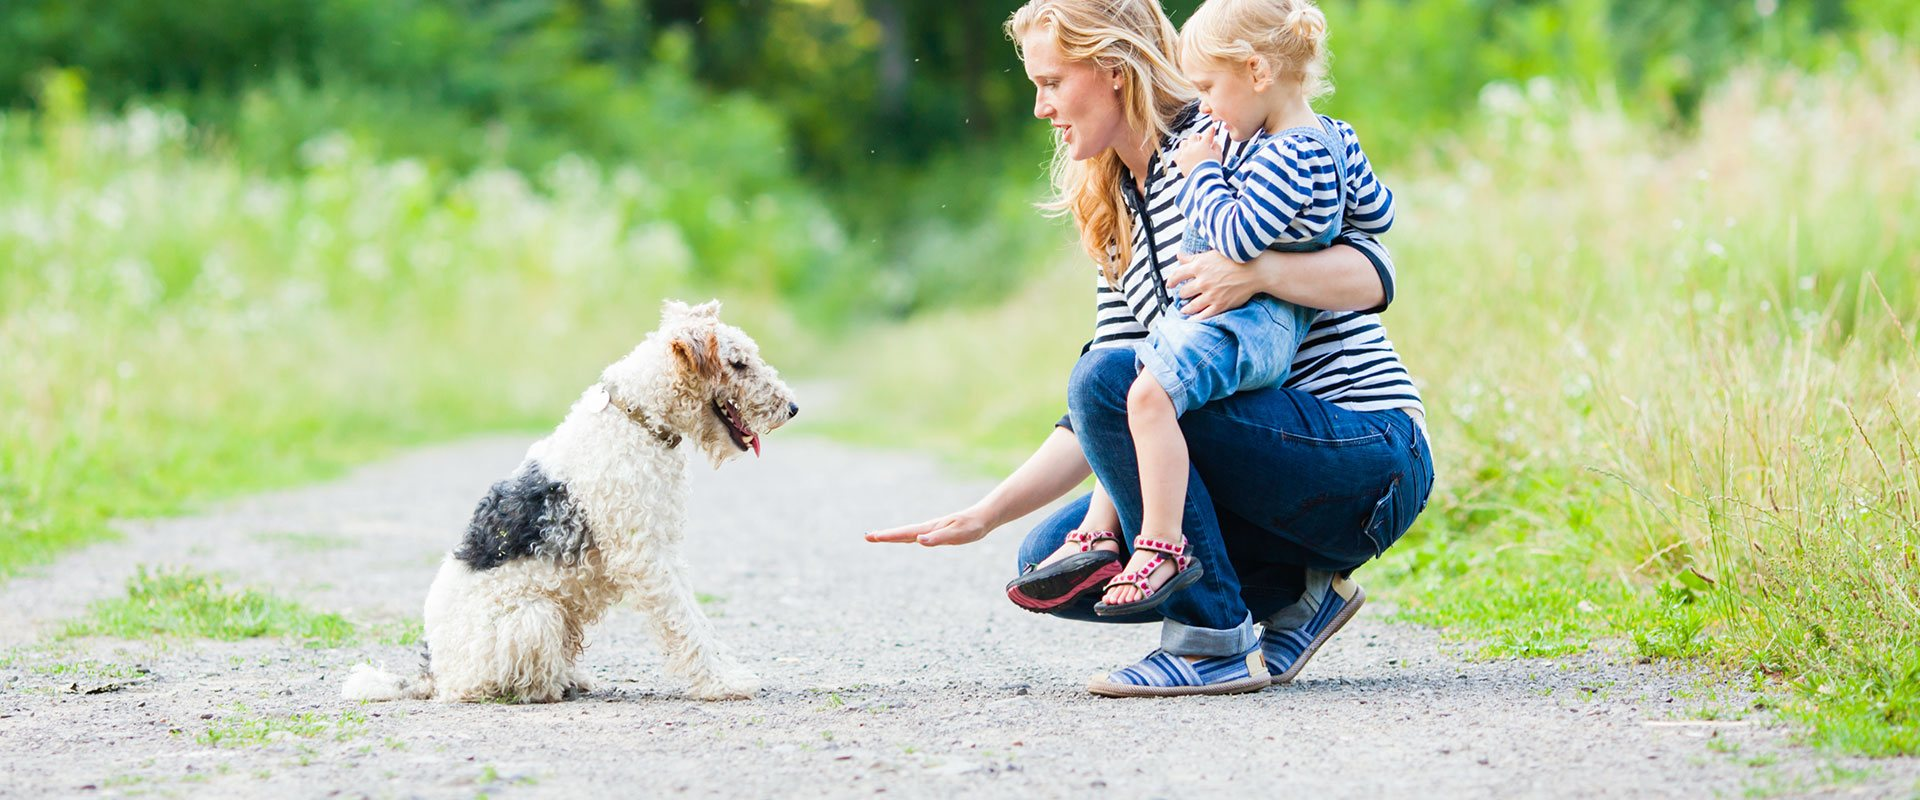 Dog Training | Dog Behaviourist | Eastern Companion Dog Training